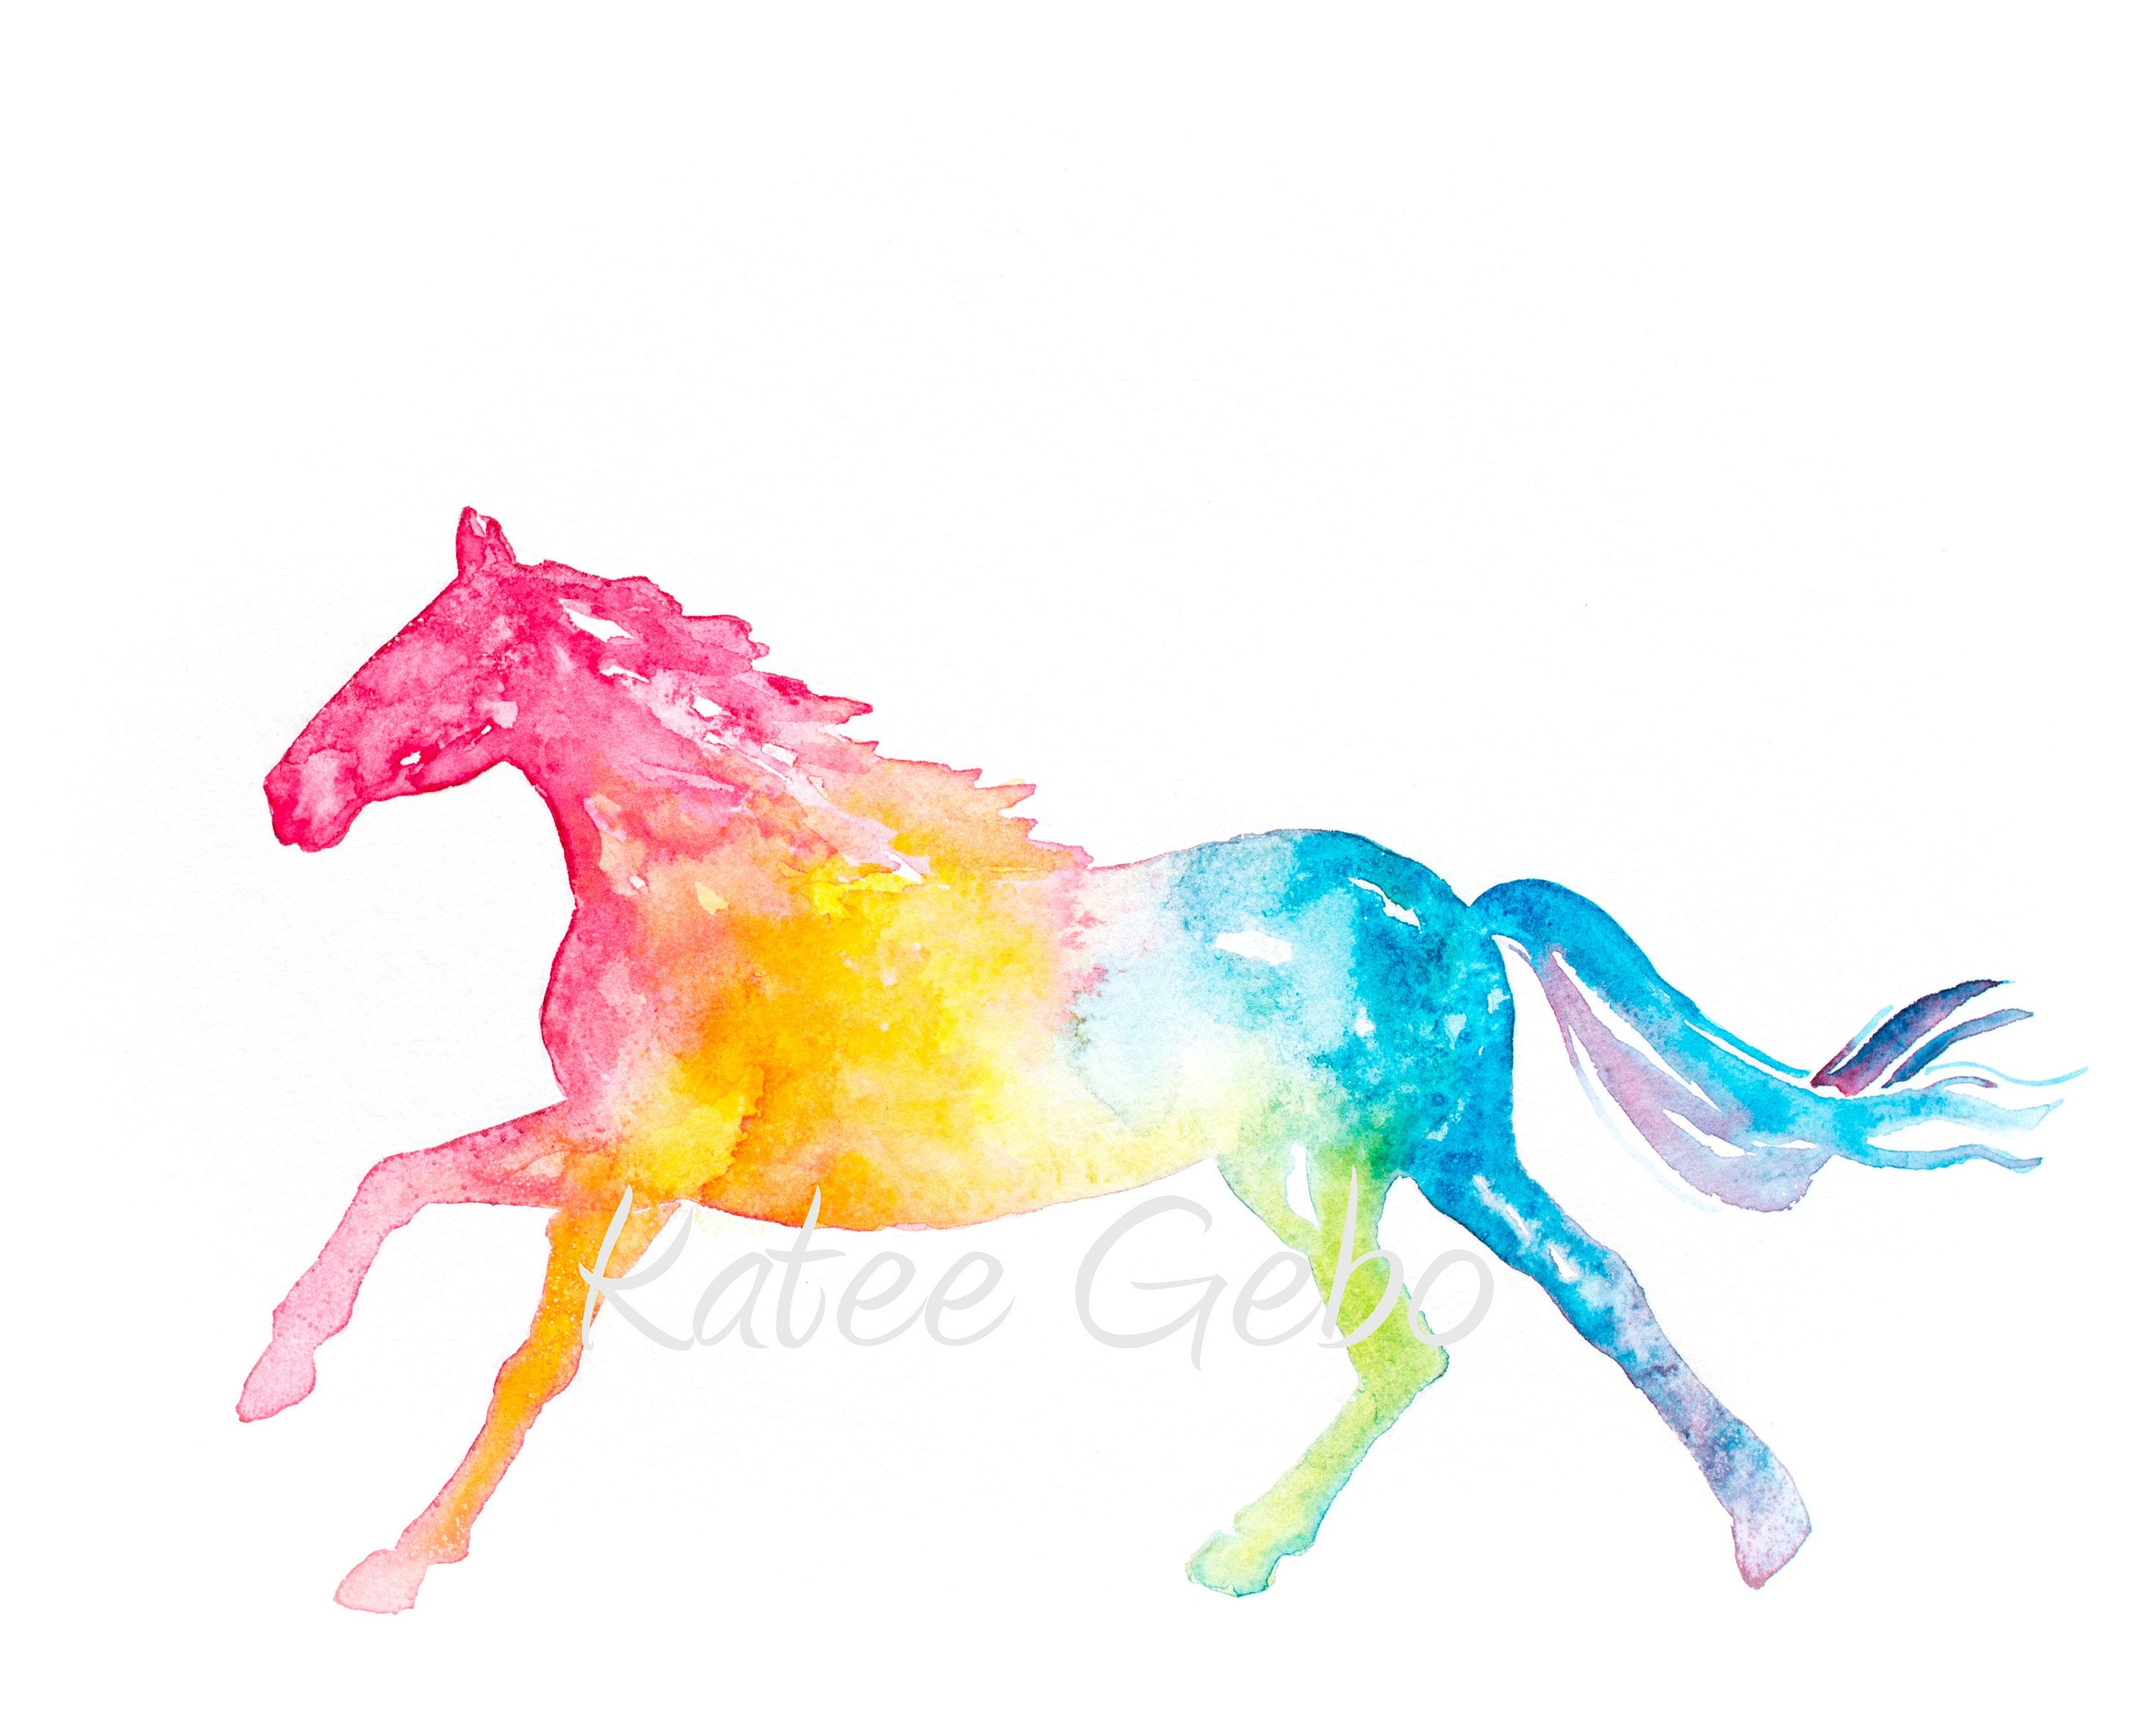 Horse Wall Art Watercolor Rainbow Colors Printable Digital Etsy In 2021 Horse Wall Art Watercolor Horse Painting Horse Painting